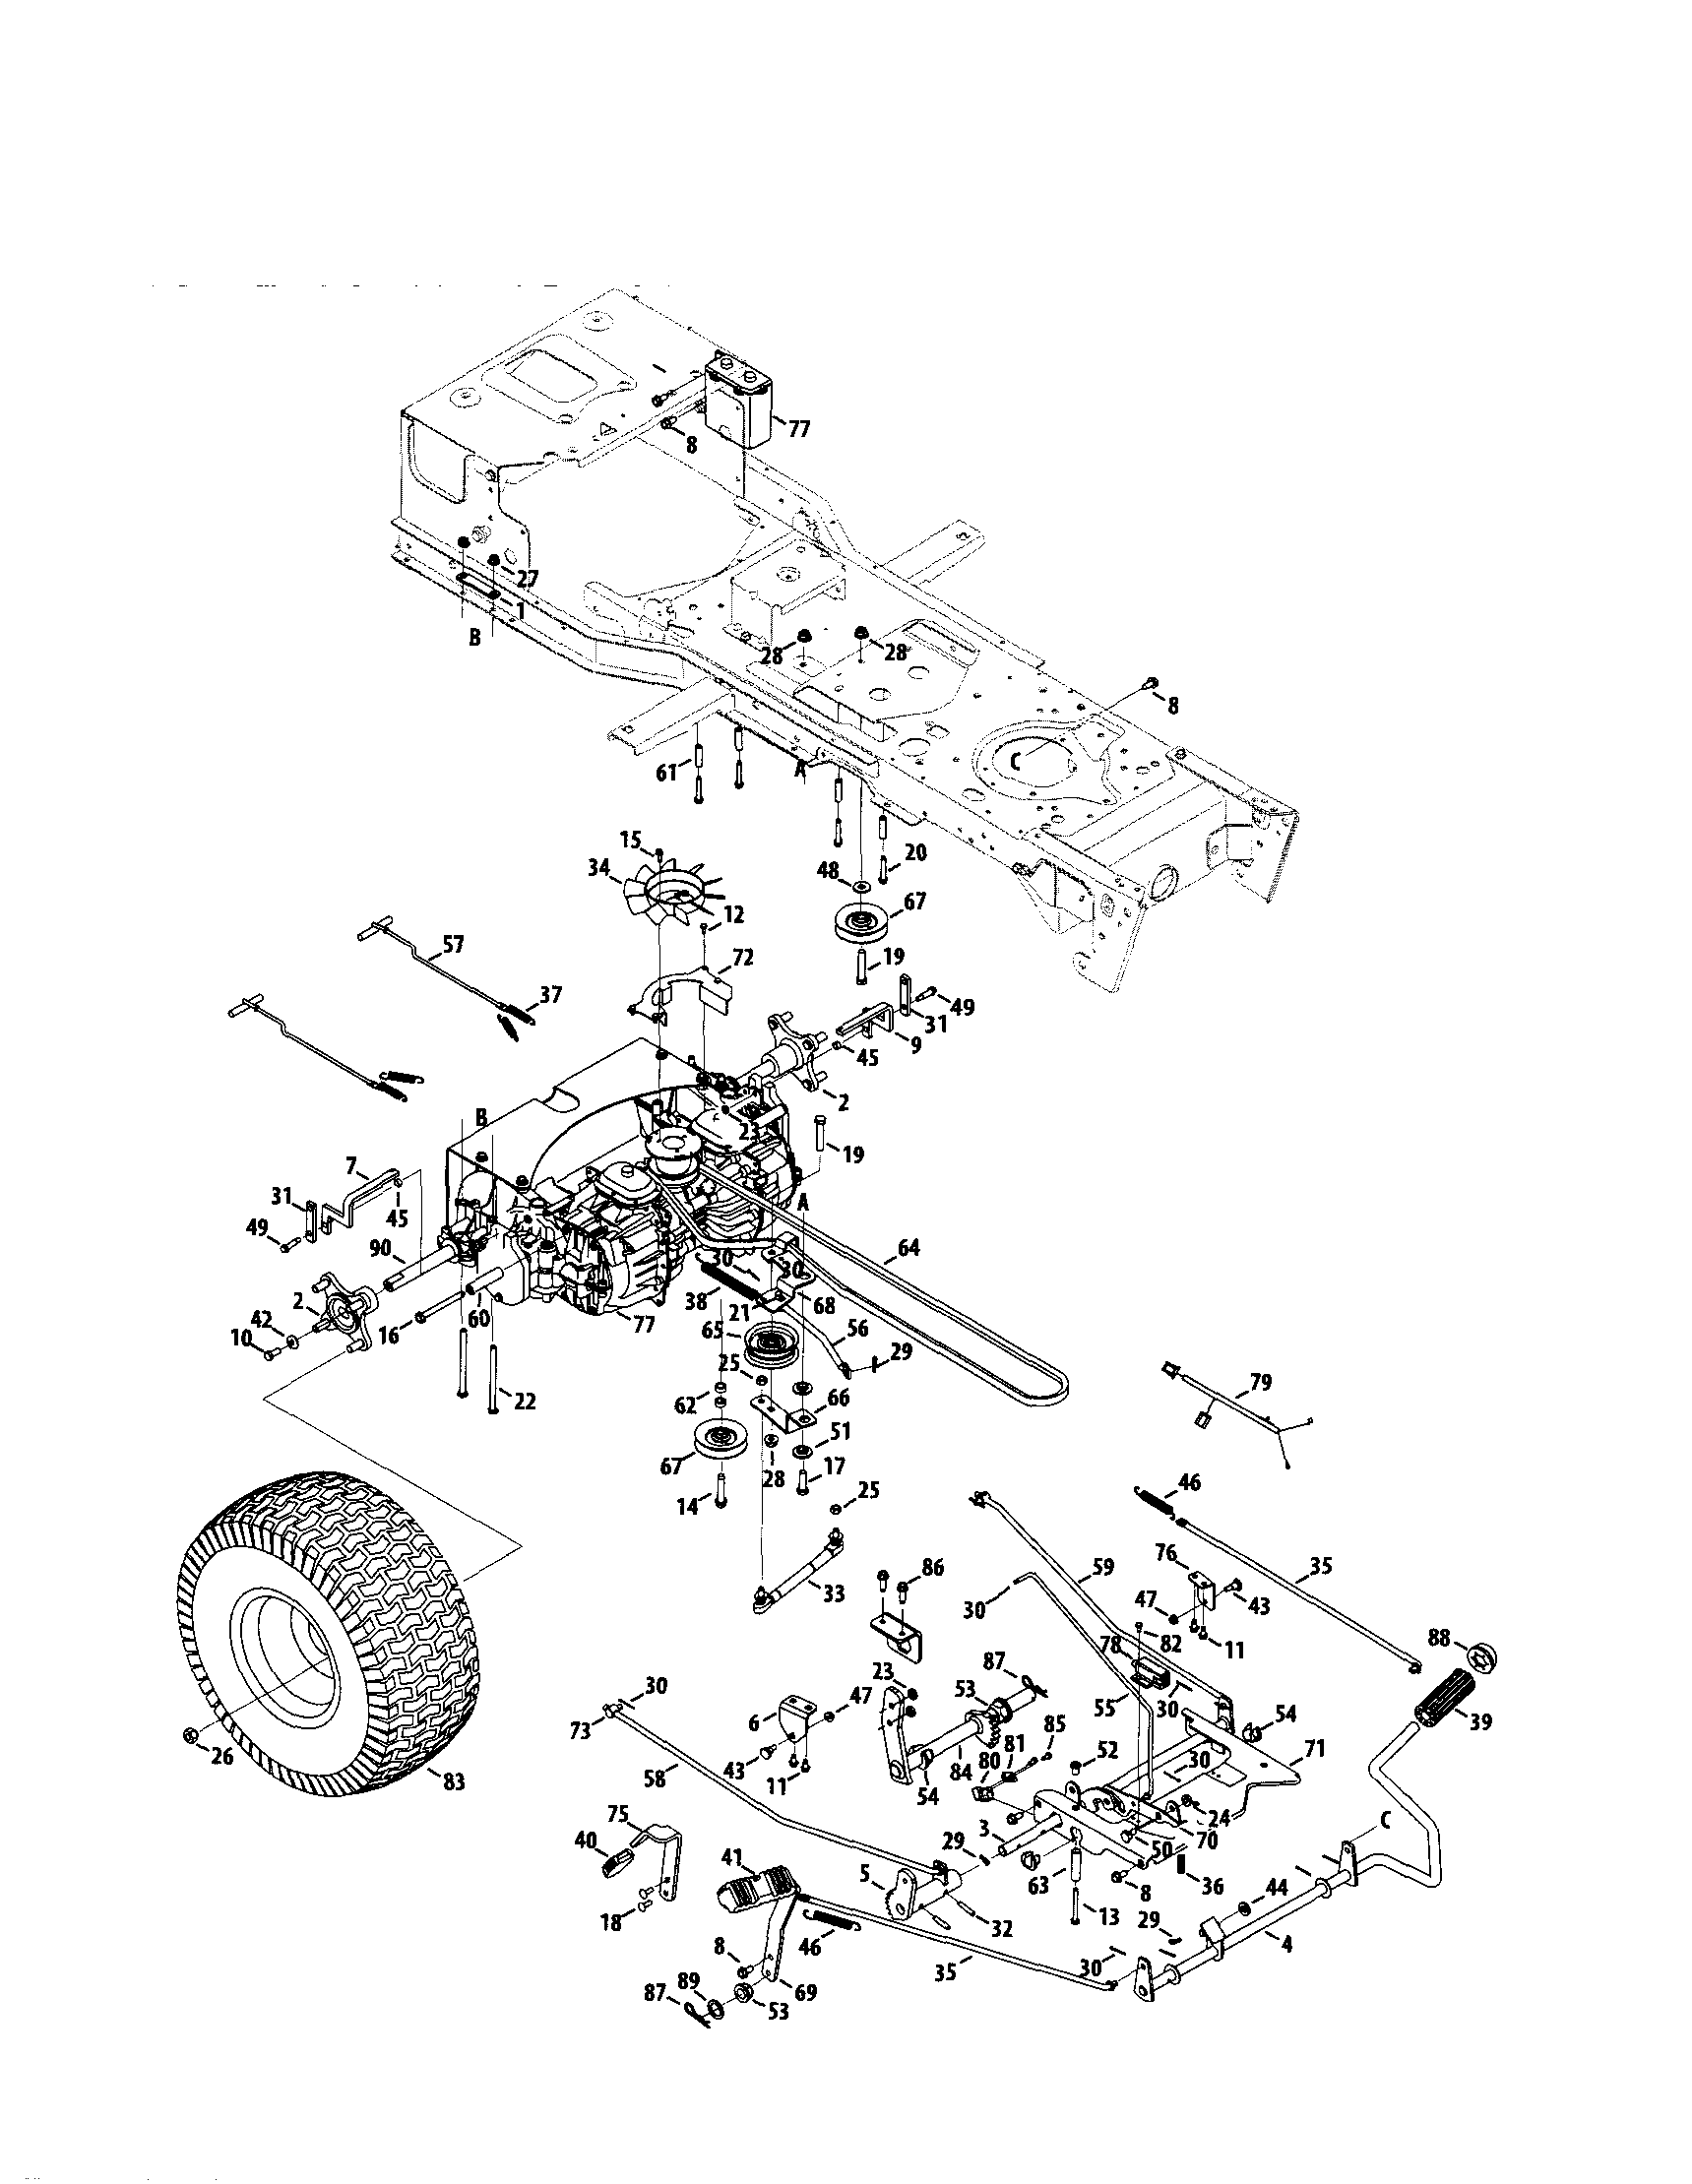 Zero Turn Mower Drawing At Free For Personal Use Wiring Diagram Husqvarna Rz 5426 1719x2219 Parts Templates Repair Manual Bobcat Toro